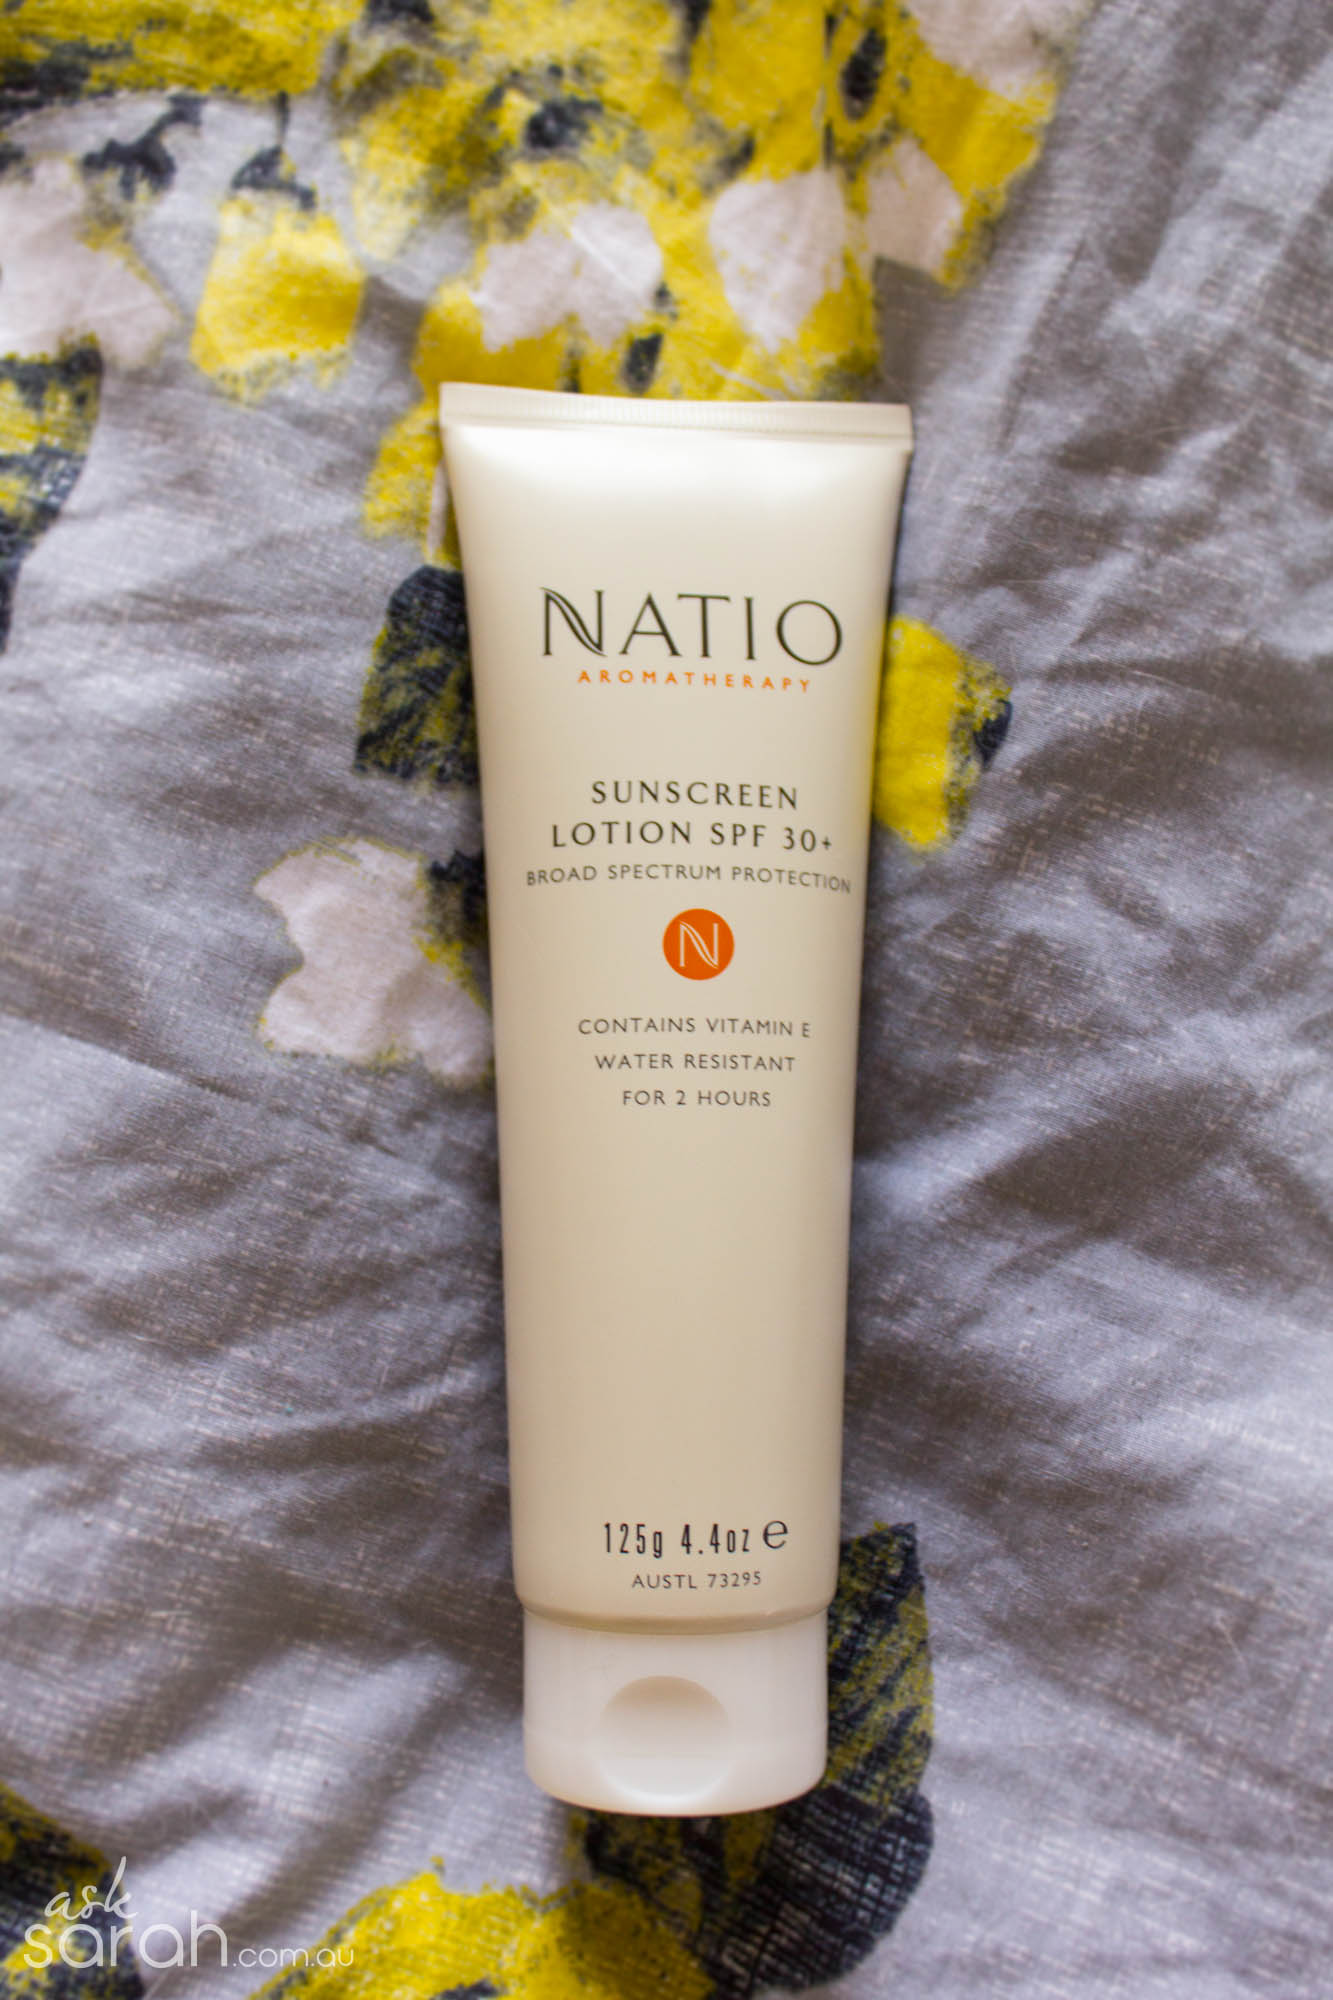 My Top Daily Sunscreens for Face & Body